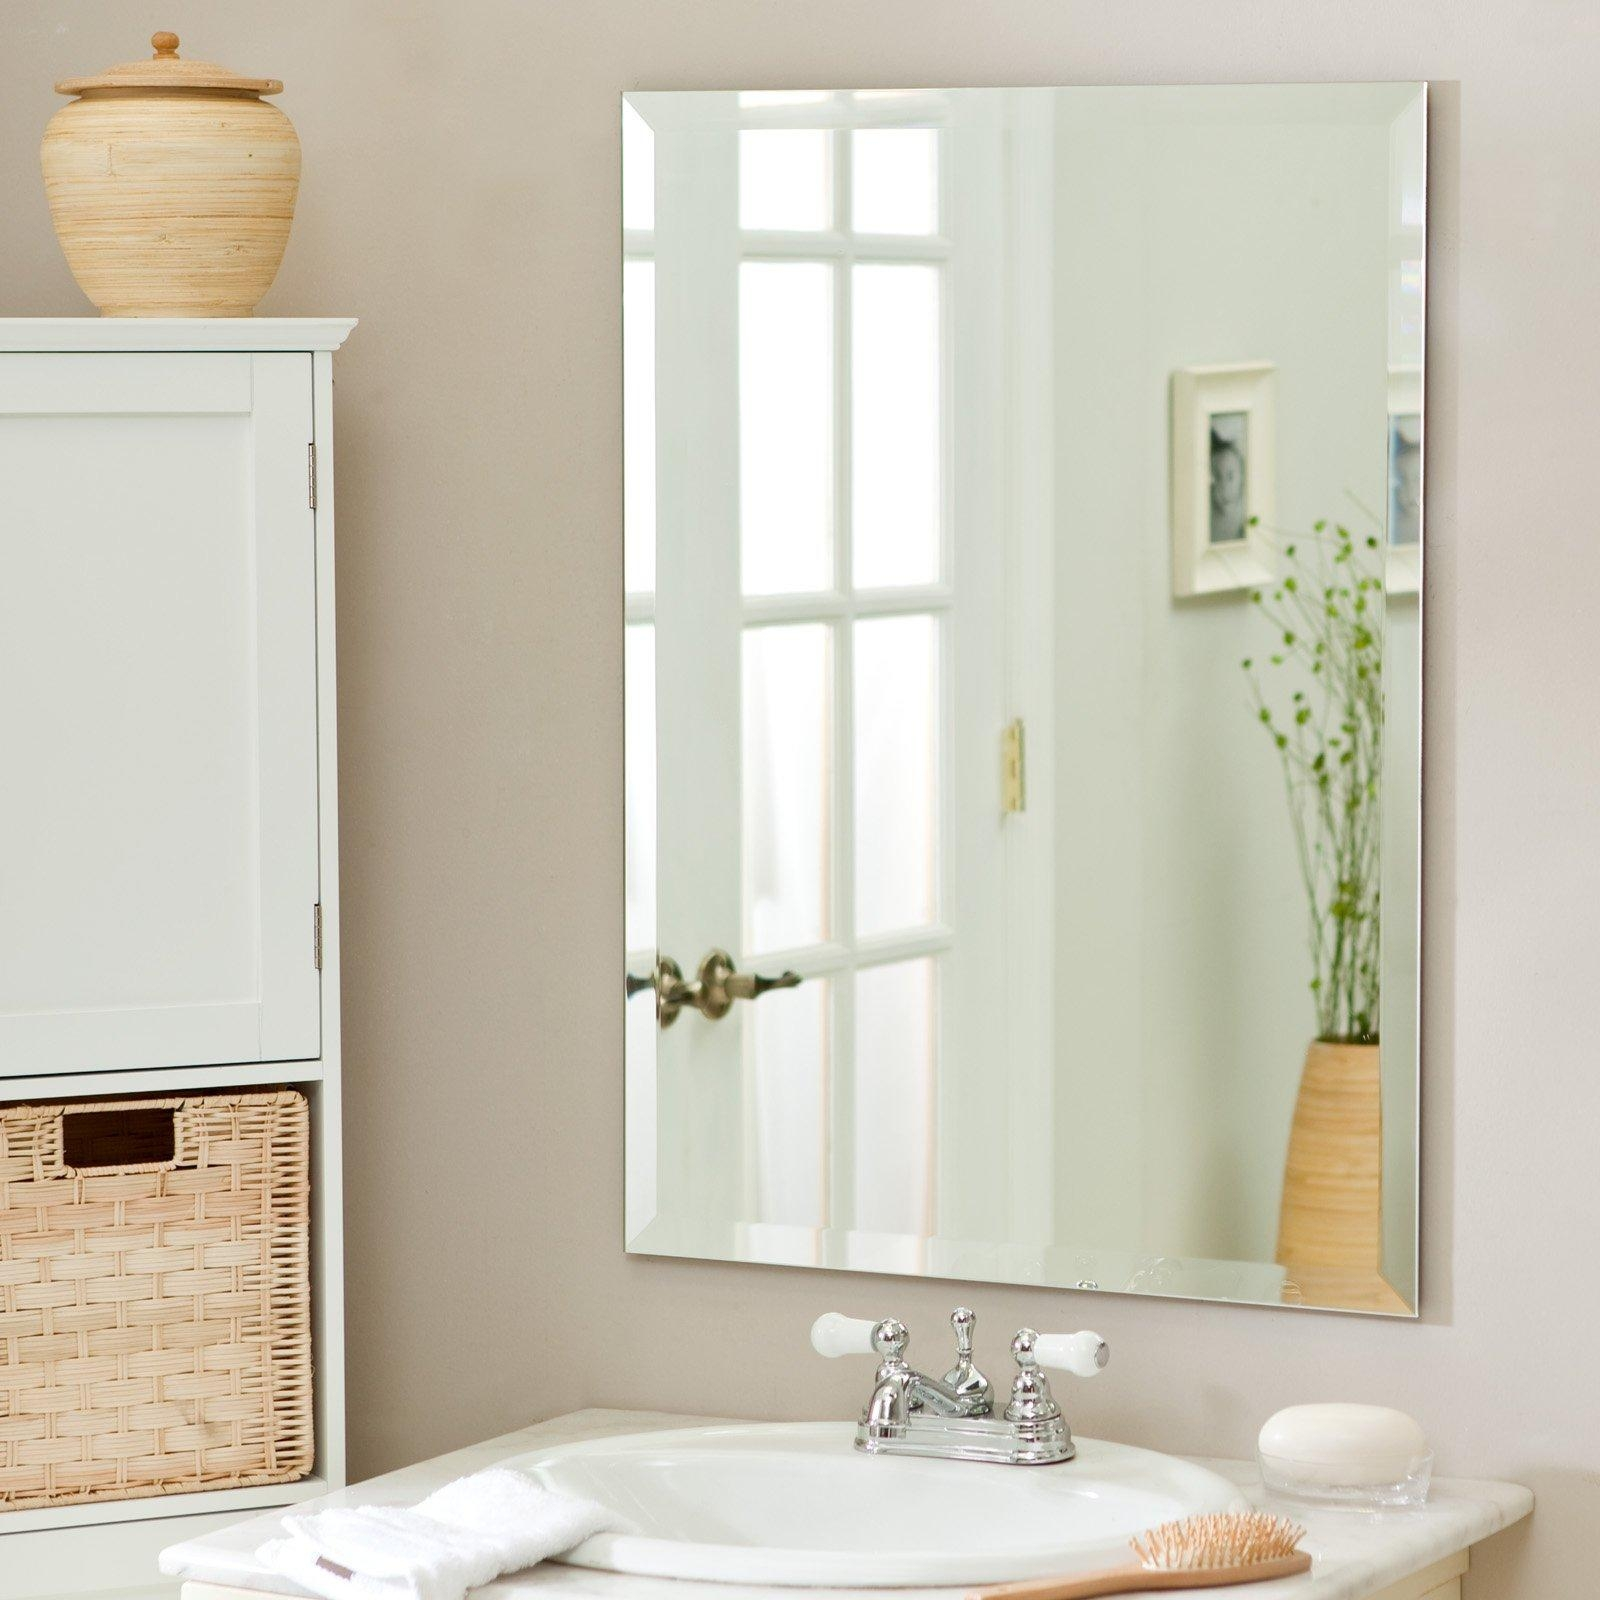 House : Chic Beveled Bathroom Mirrors Frameless Uk In X In Regarding Frameless Beveled Bathroom Mirrors (Image 12 of 20)